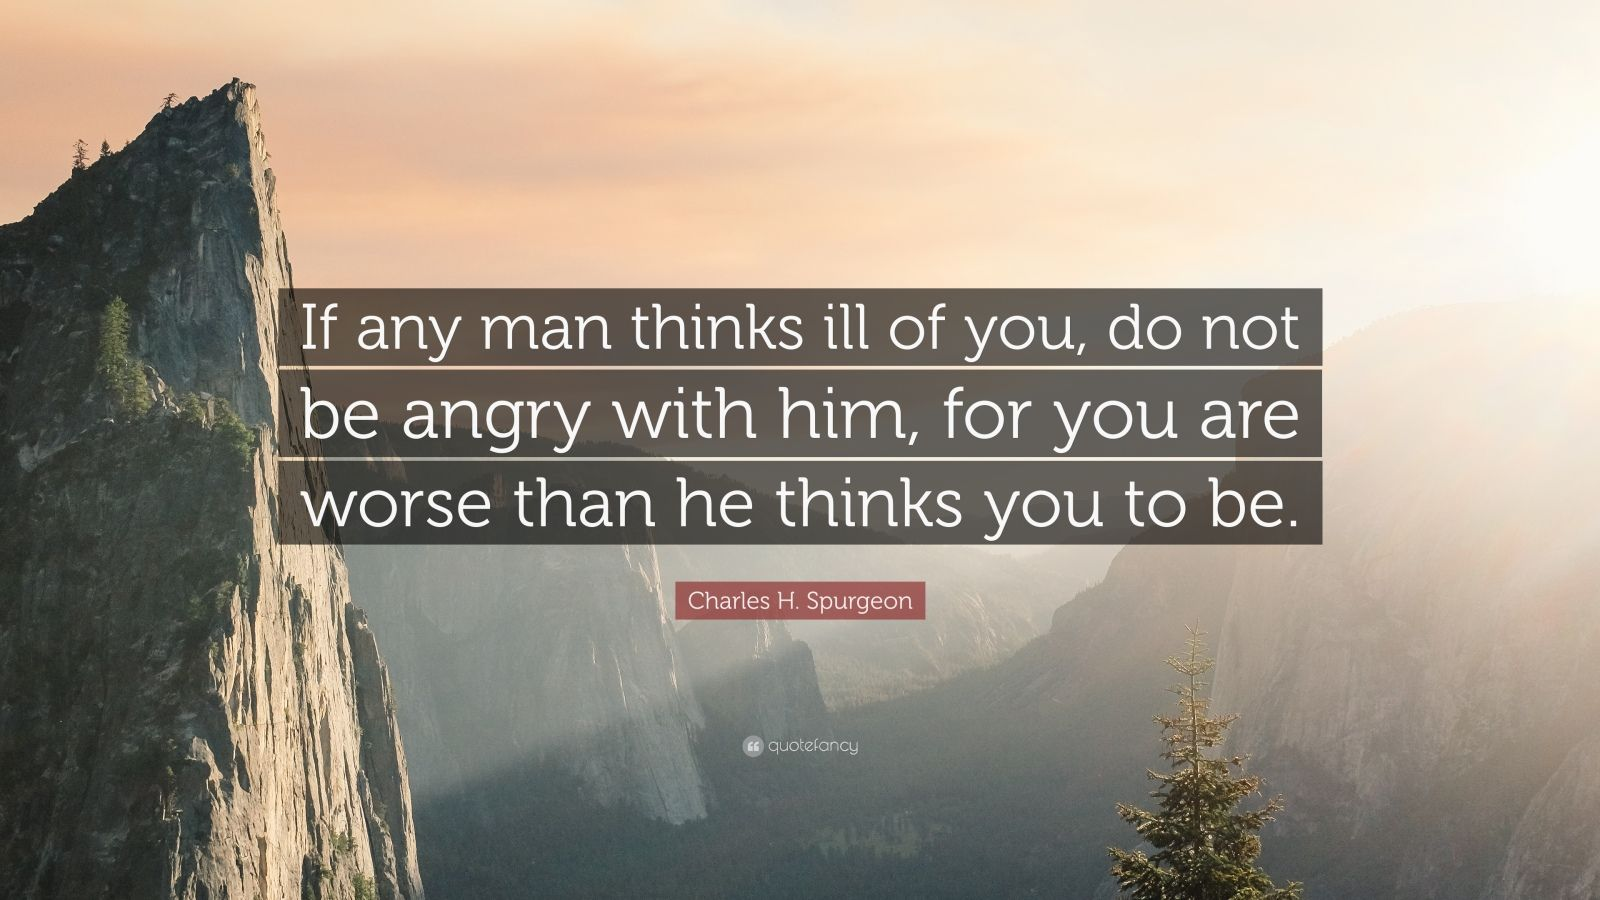 Nick Vujicic Quotes Wallpaper Charles H Spurgeon Quote If Any Man Thinks Ill Of You